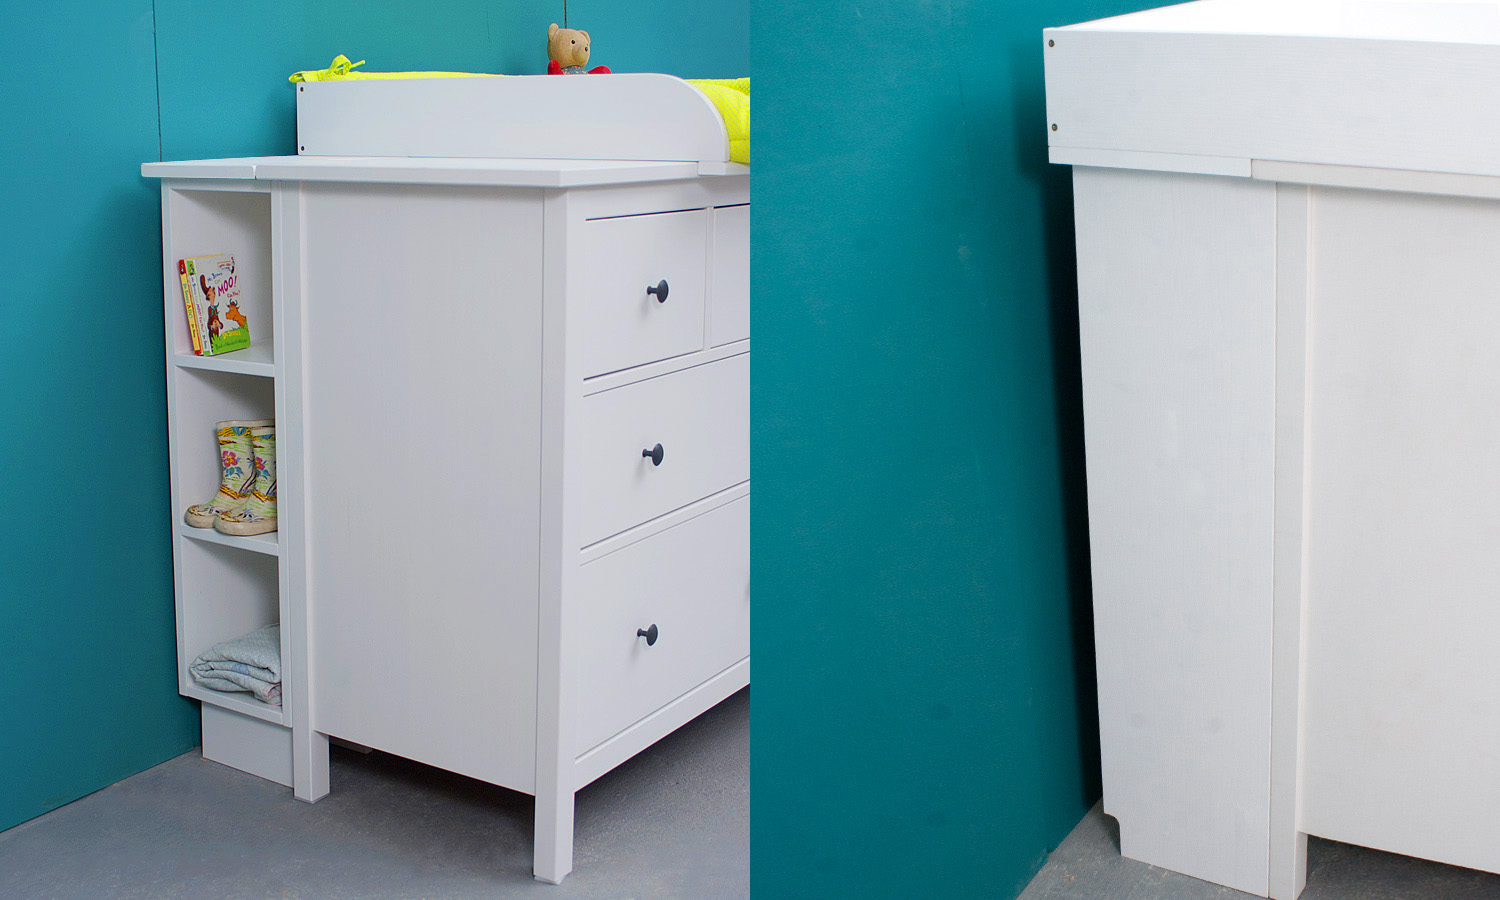 wickelaufsatz regal f r ikea hemnes schmal werkstatt geppetto. Black Bedroom Furniture Sets. Home Design Ideas